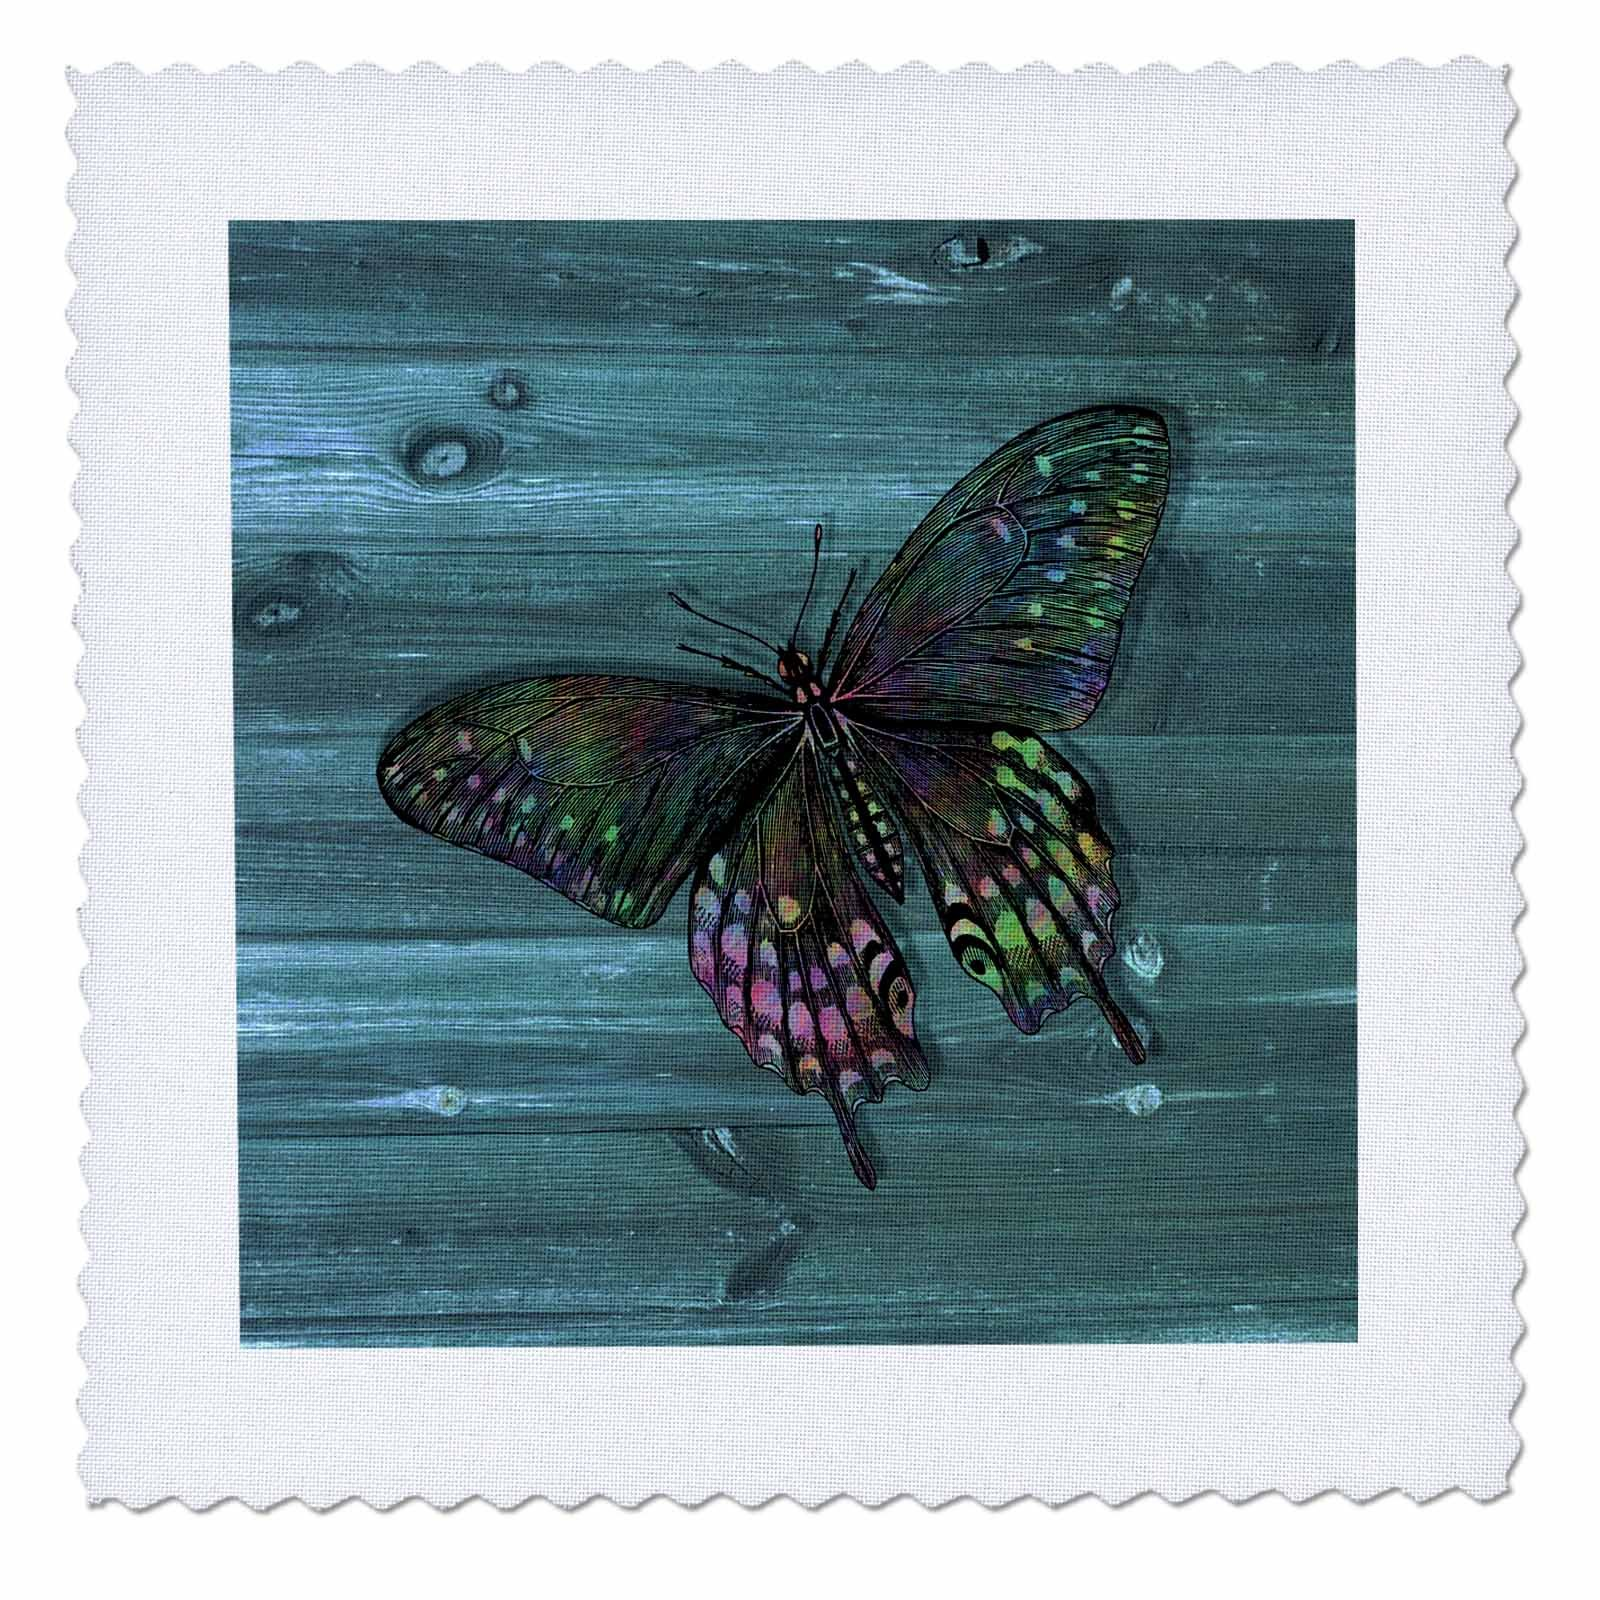 3dRose Russ Billington Designs - Pretty Butterfly Resting on Blue Weatherboard- not real wood - 16x16 inch quilt square (qs_261714_6)